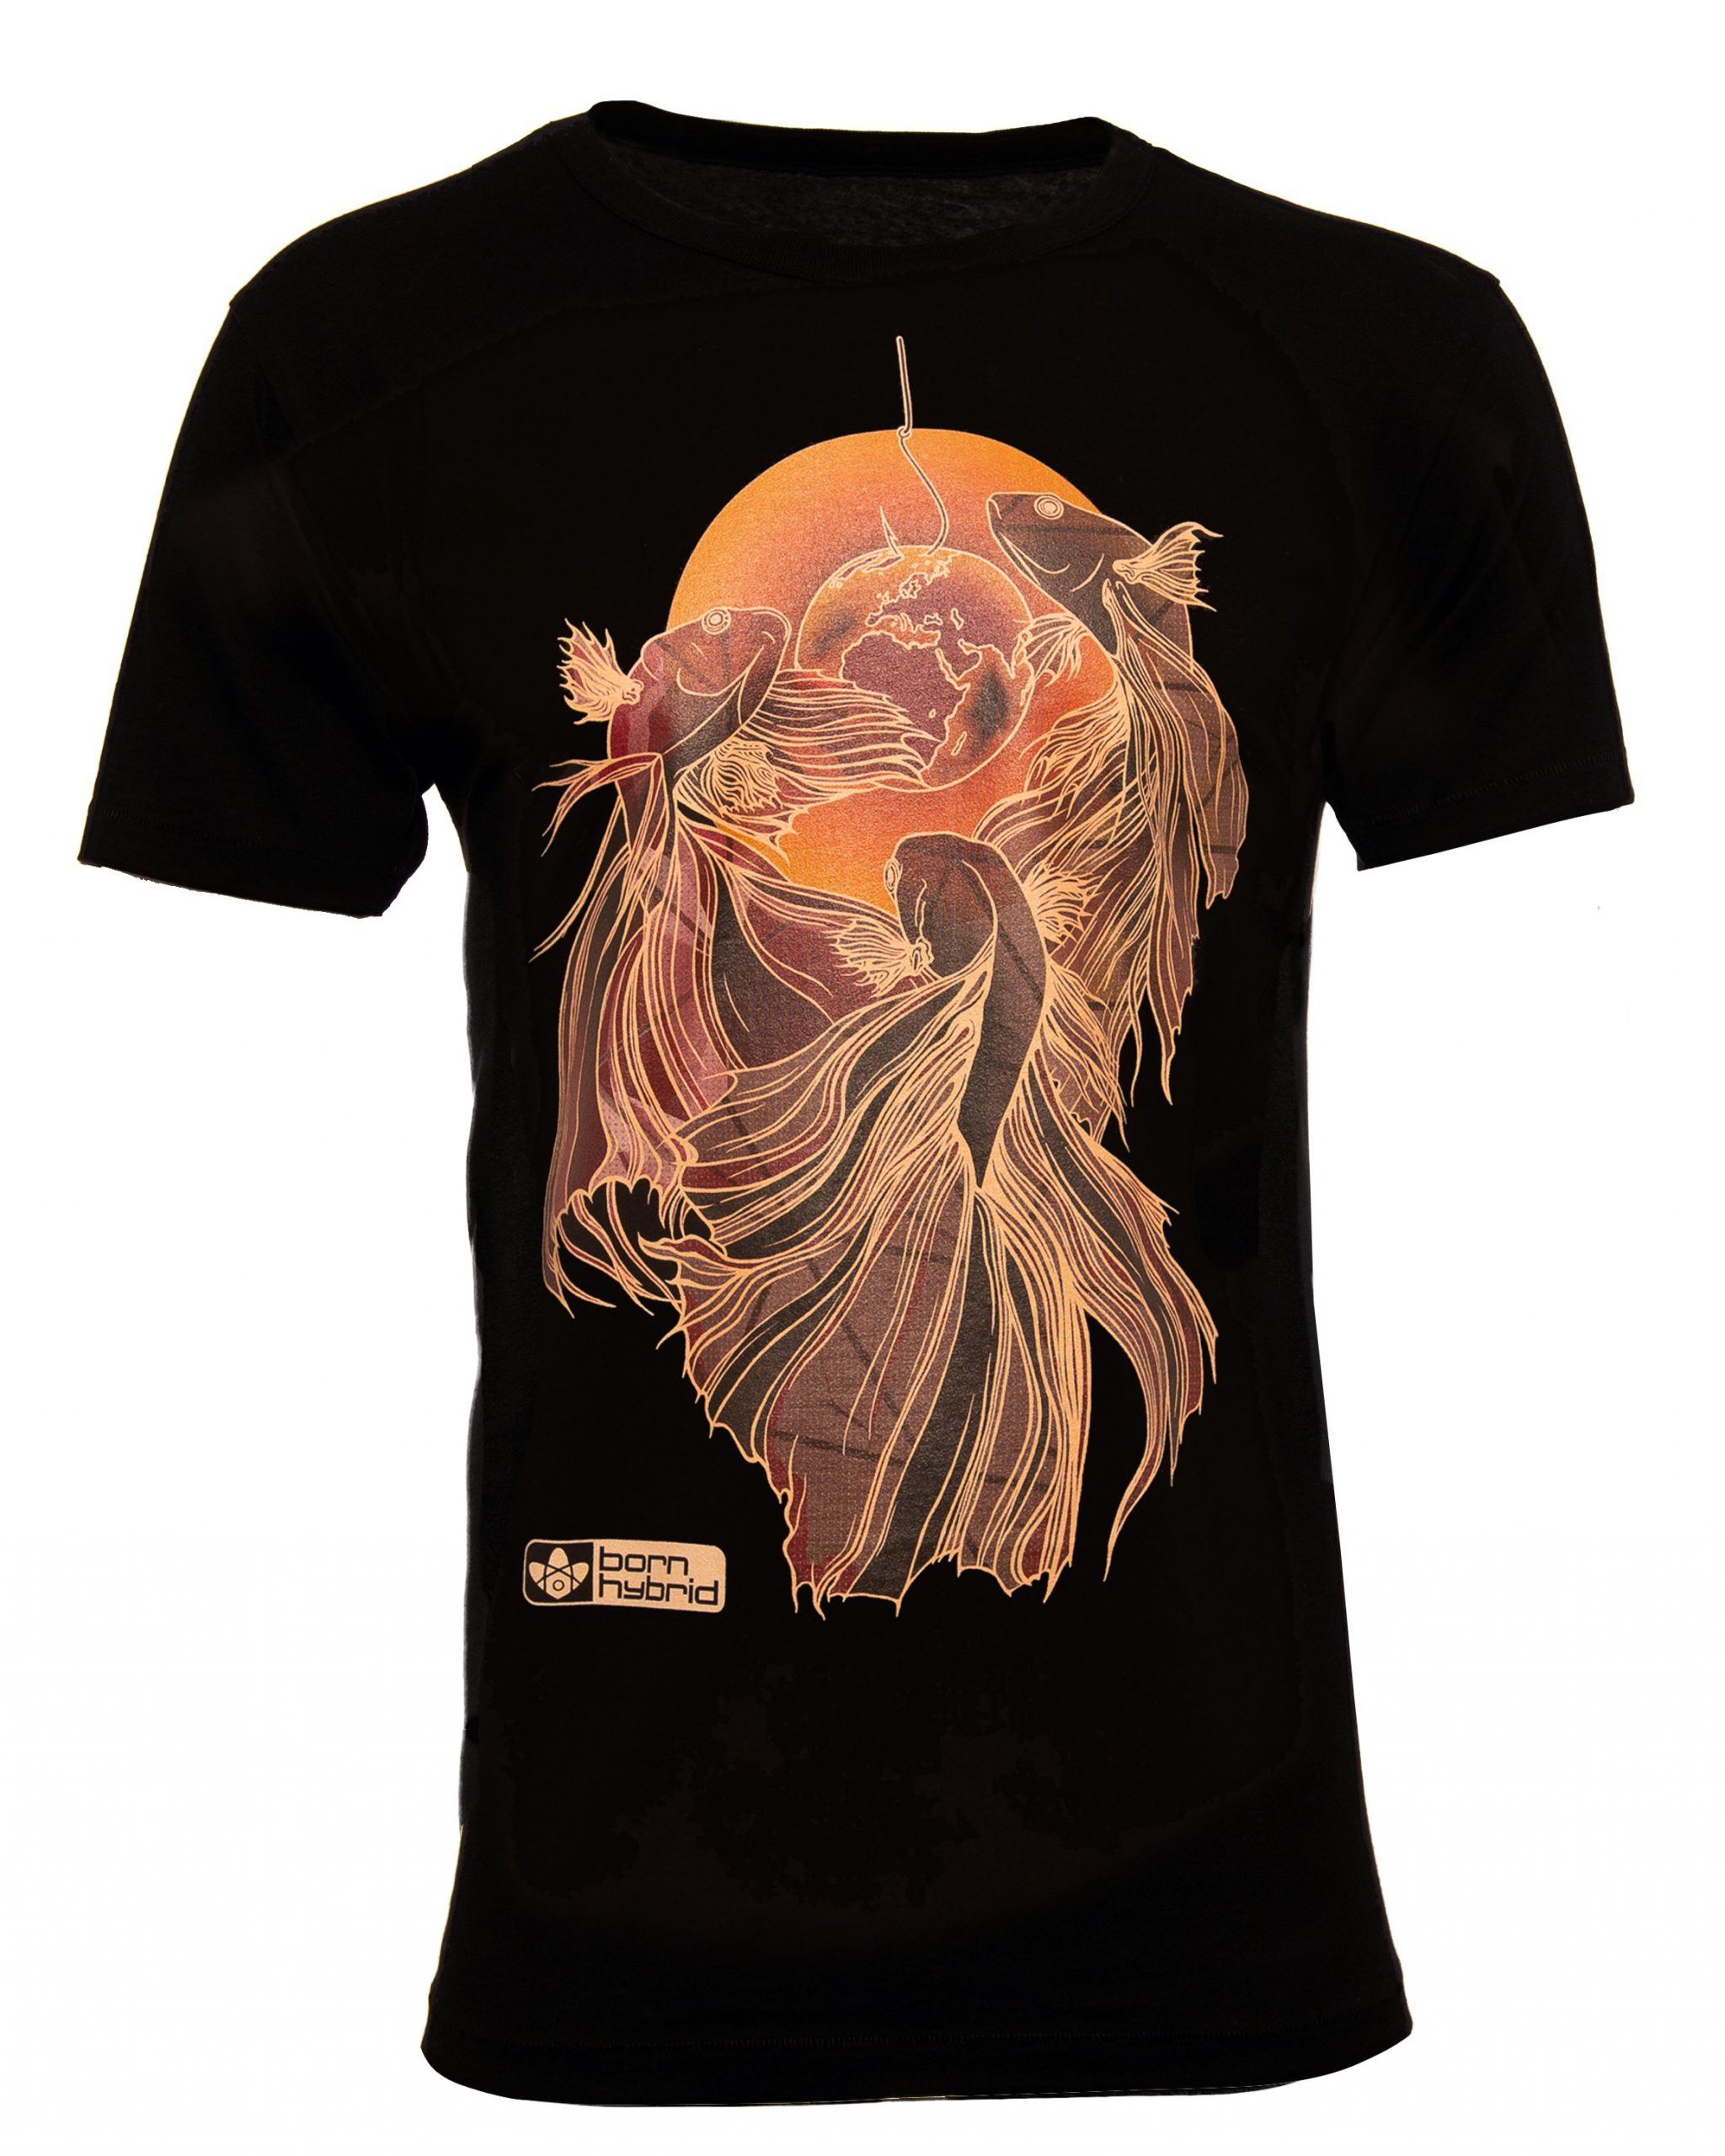 Men's black betta T-shirt / siamese fighting fish T-shirt with red and orange fighting fish graphic. Eco t-shirt by Born Hybrid